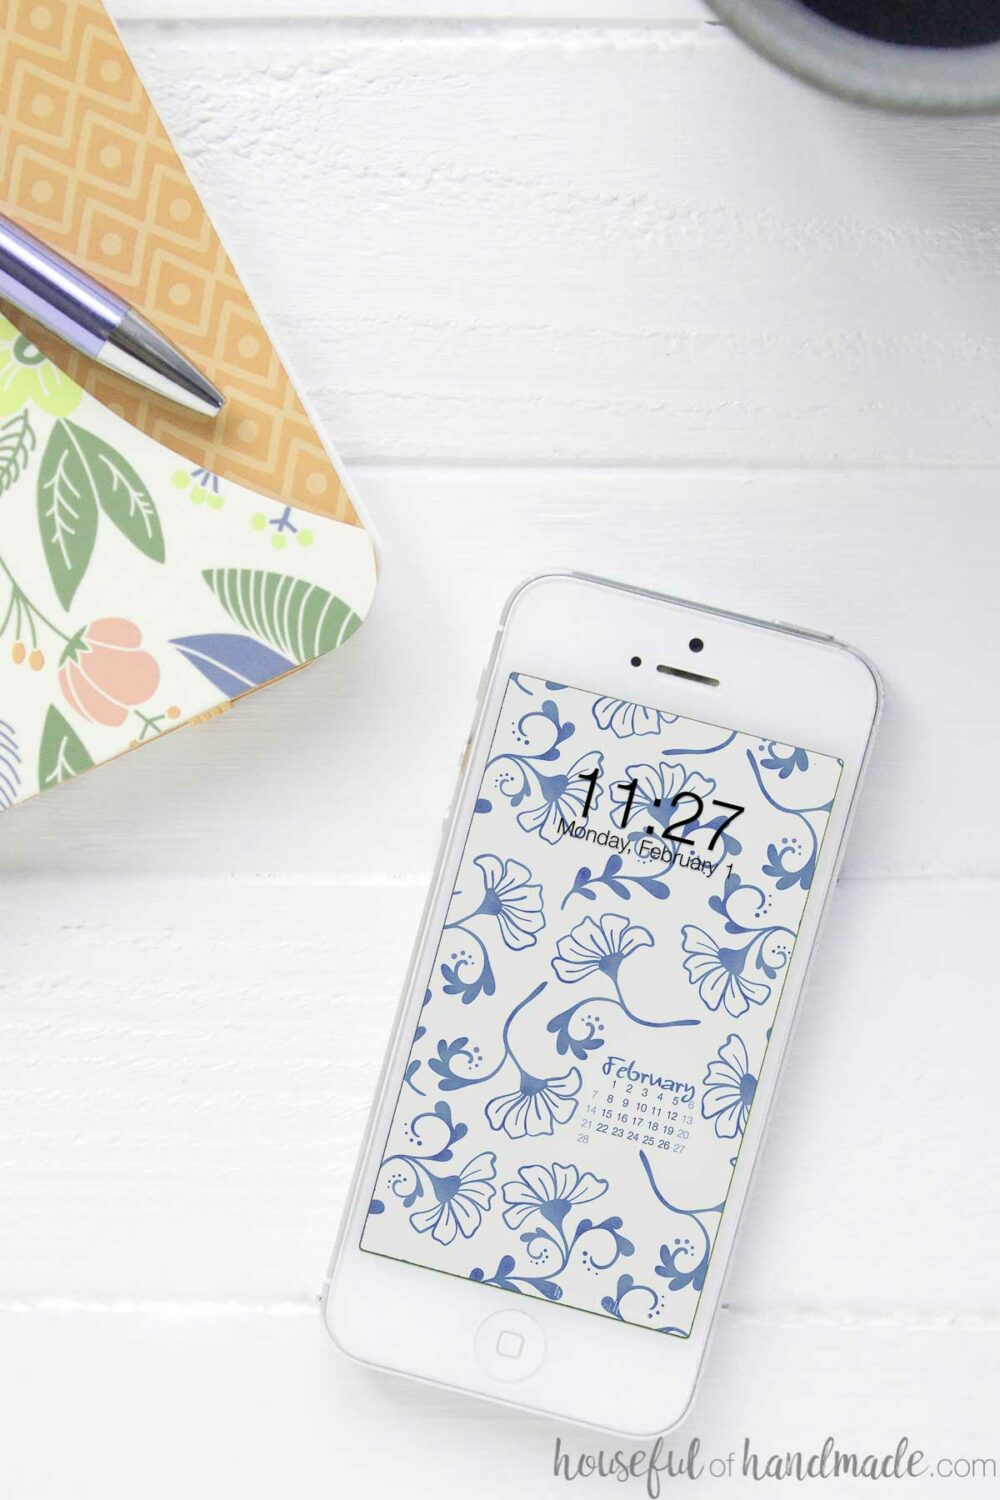 White iPhone with blue floral pattern on the screen as a digital wallpaper with a February calendar.